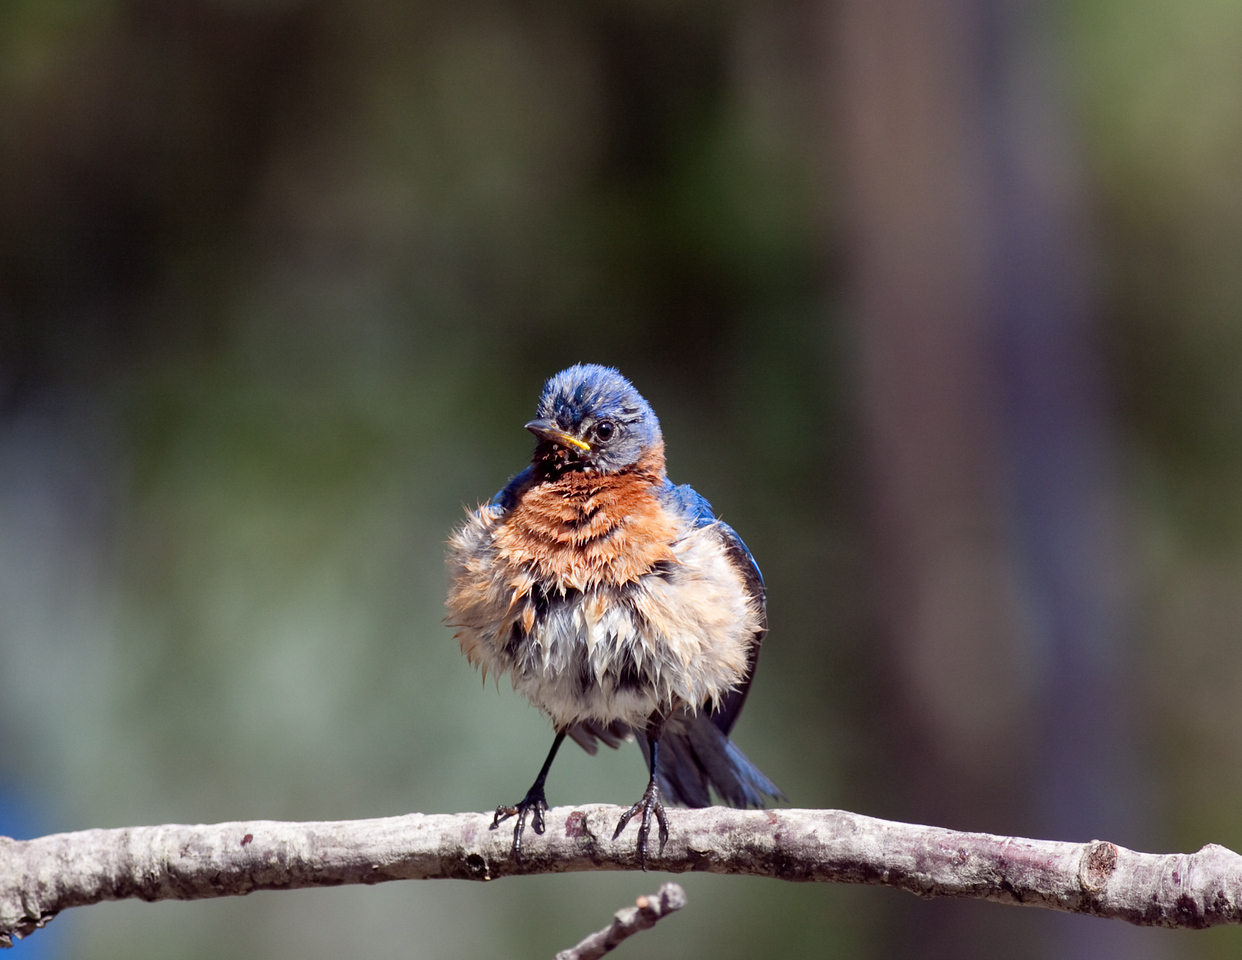 An Eastern Bluebird fluffs up to dry after a bath